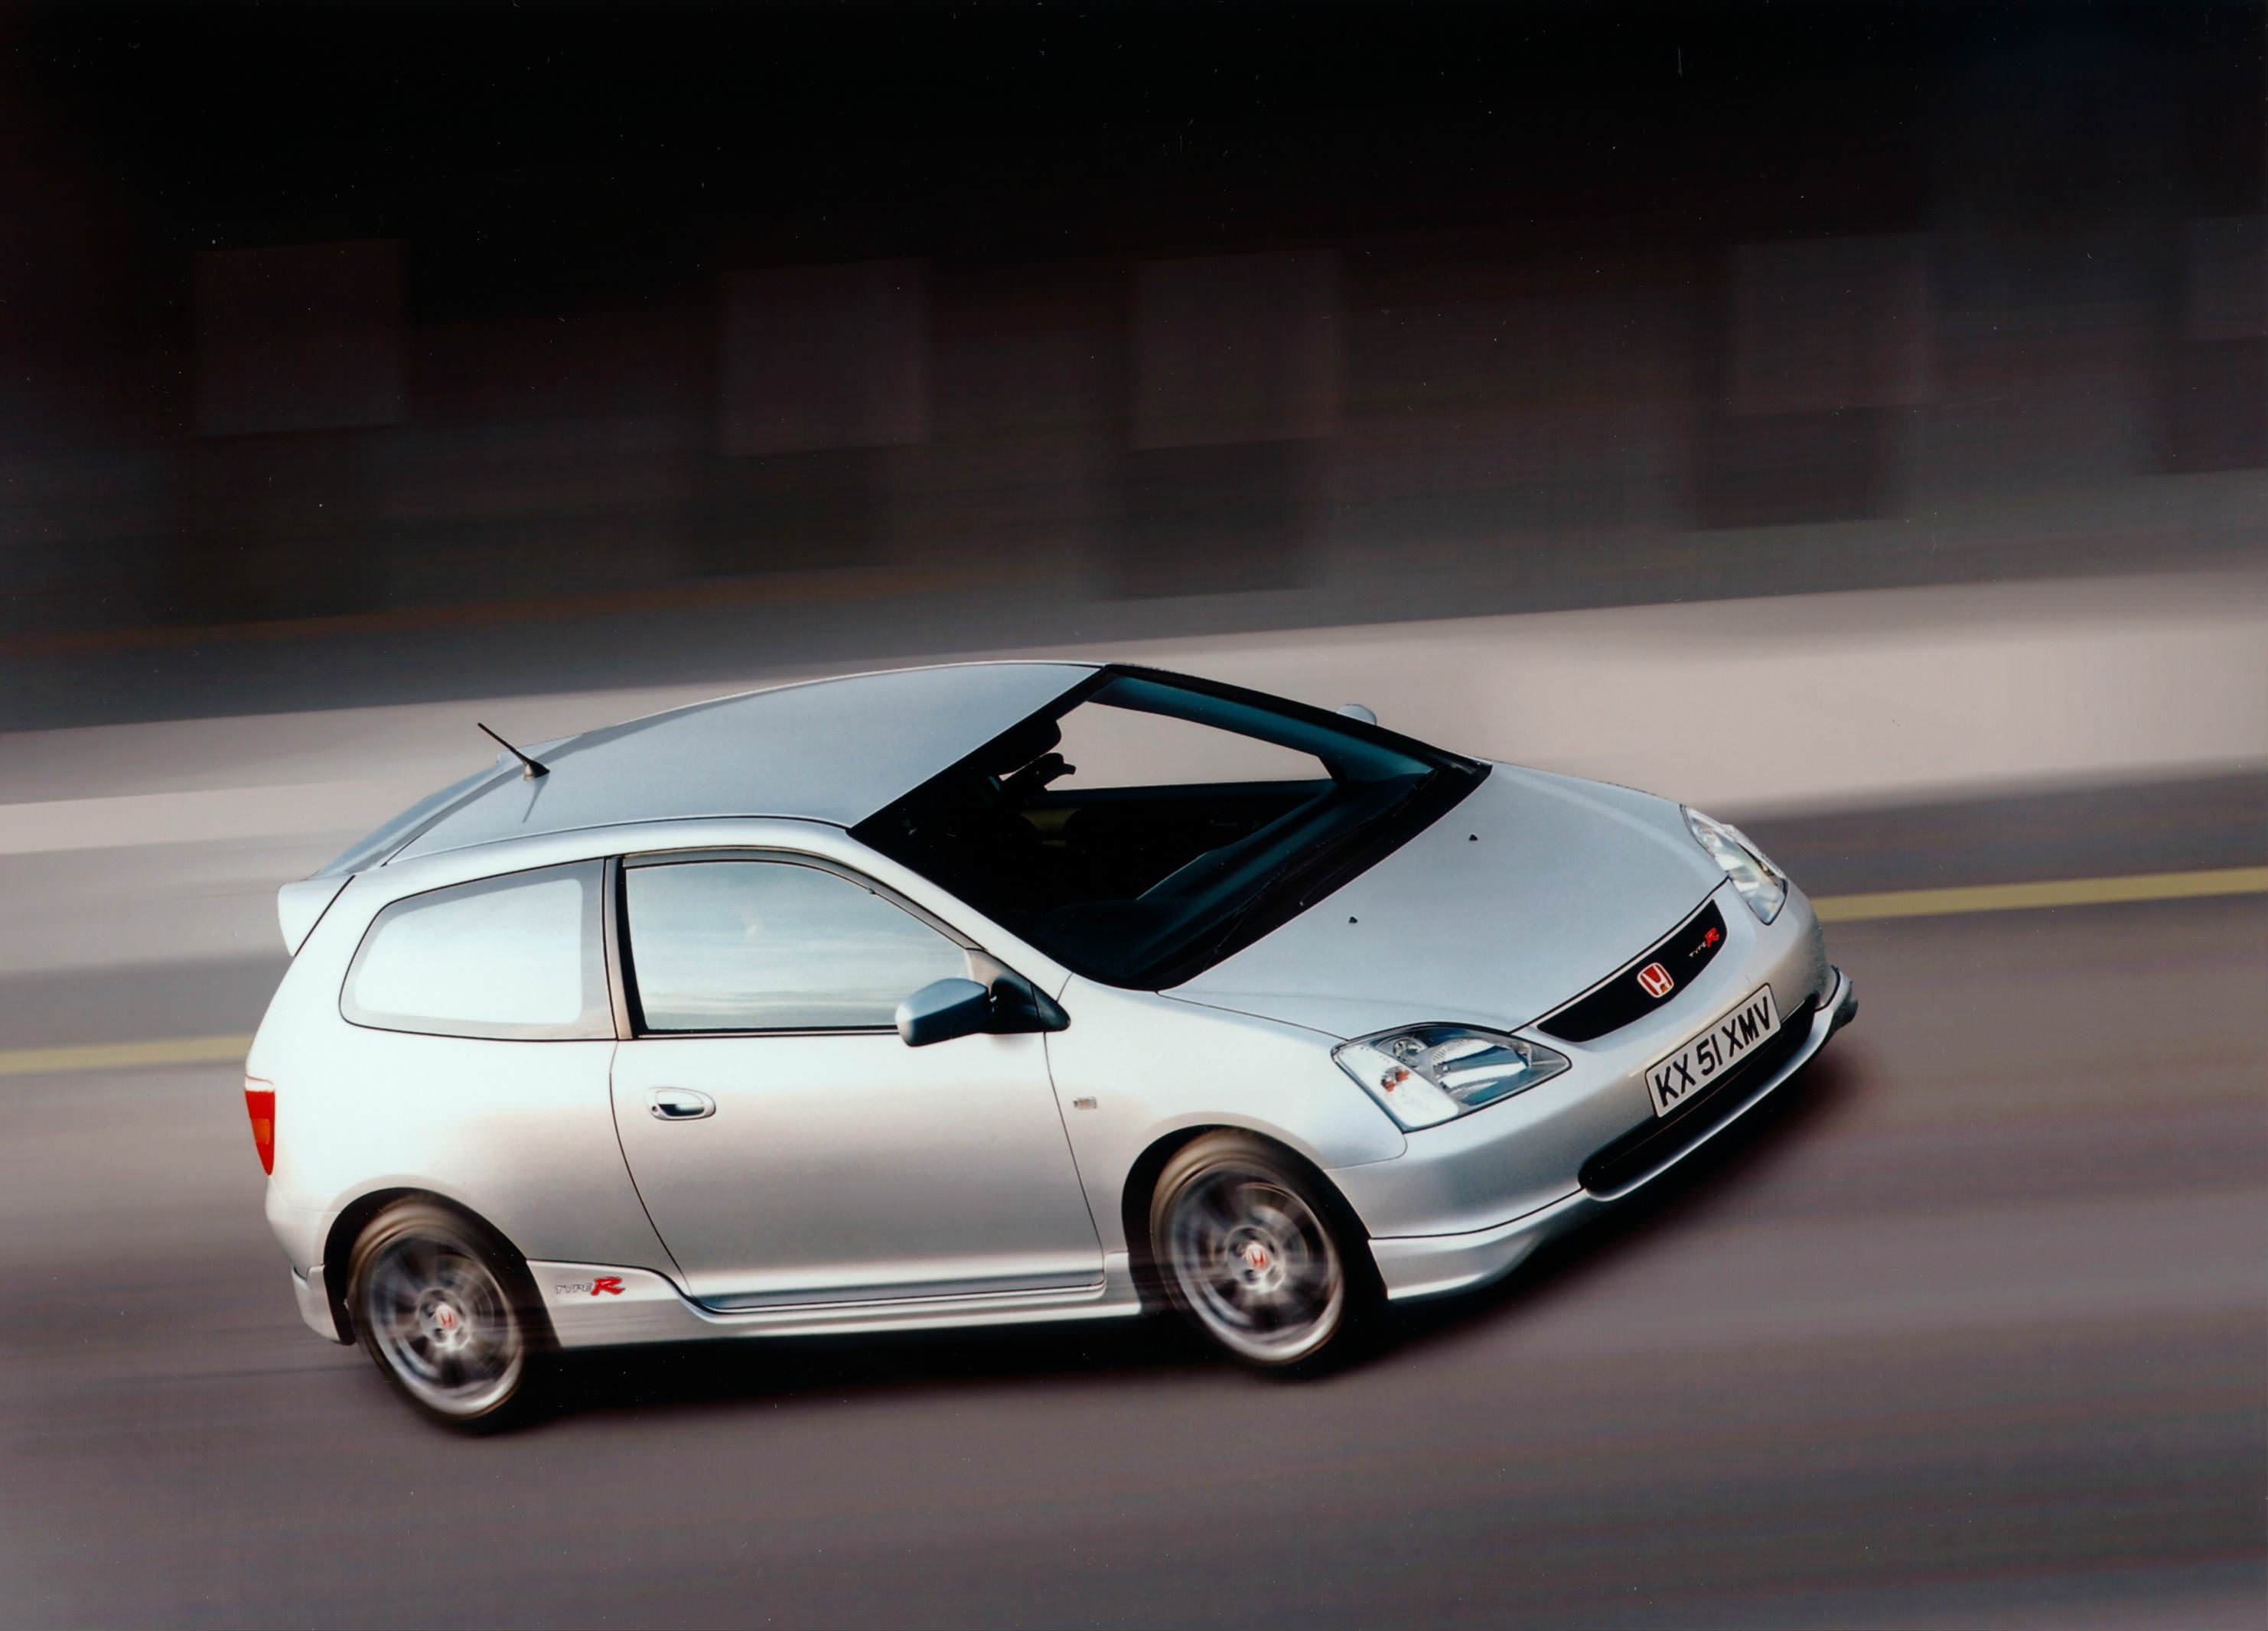 image of a silver honda civic type r car exterior